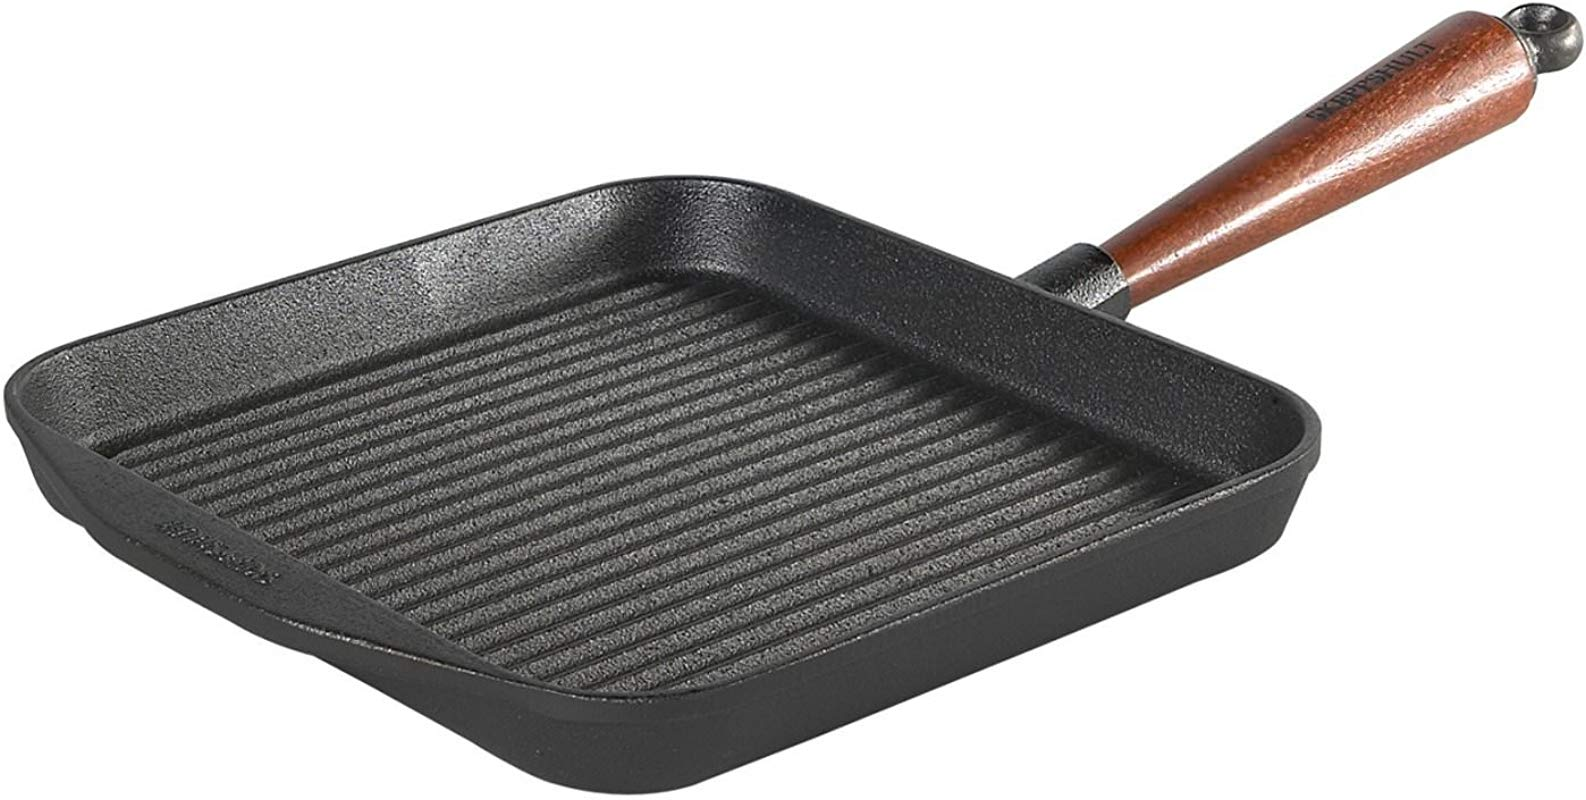 Skeppshult Square Grill Pan With Wood Handle 25 Cm By Skeppshult